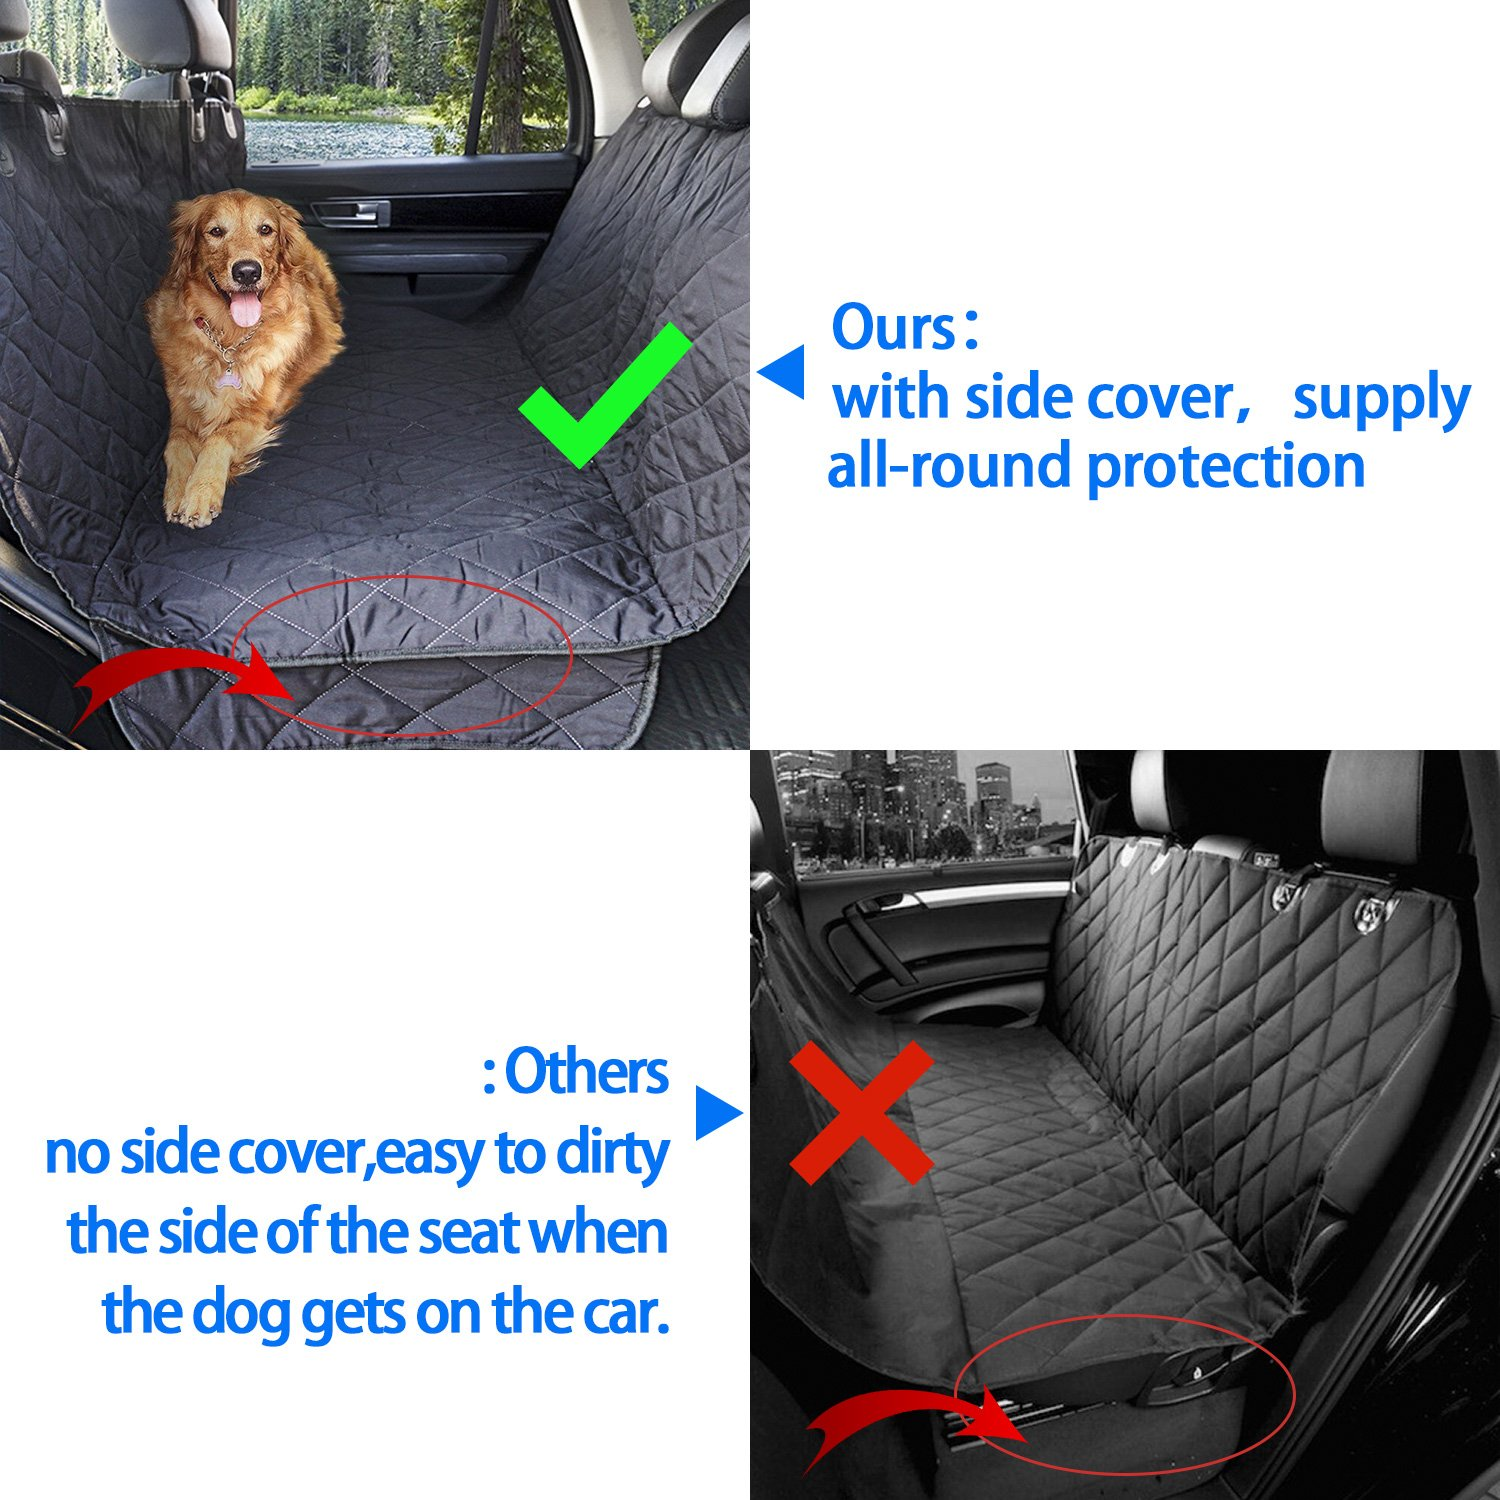 PETNINJA Luxury Waterproof Pet Seat Cover For Cars Durable Dog Car Trucks And SUVs Machine Washable Amazoncouk Supplies